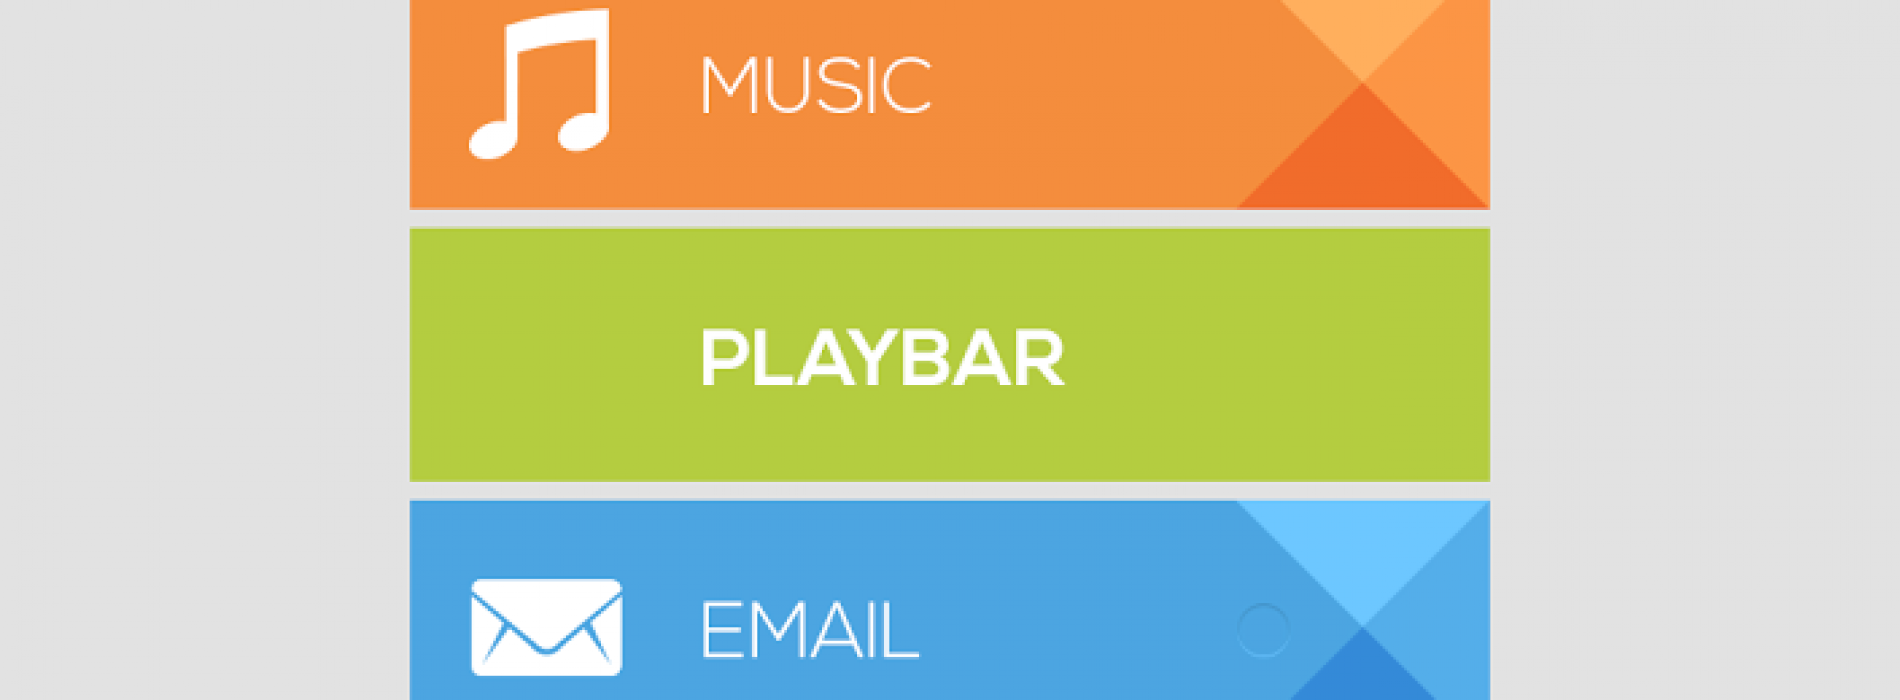 Add a bit of Google Play design to your homescreen with PlayBar UCCW